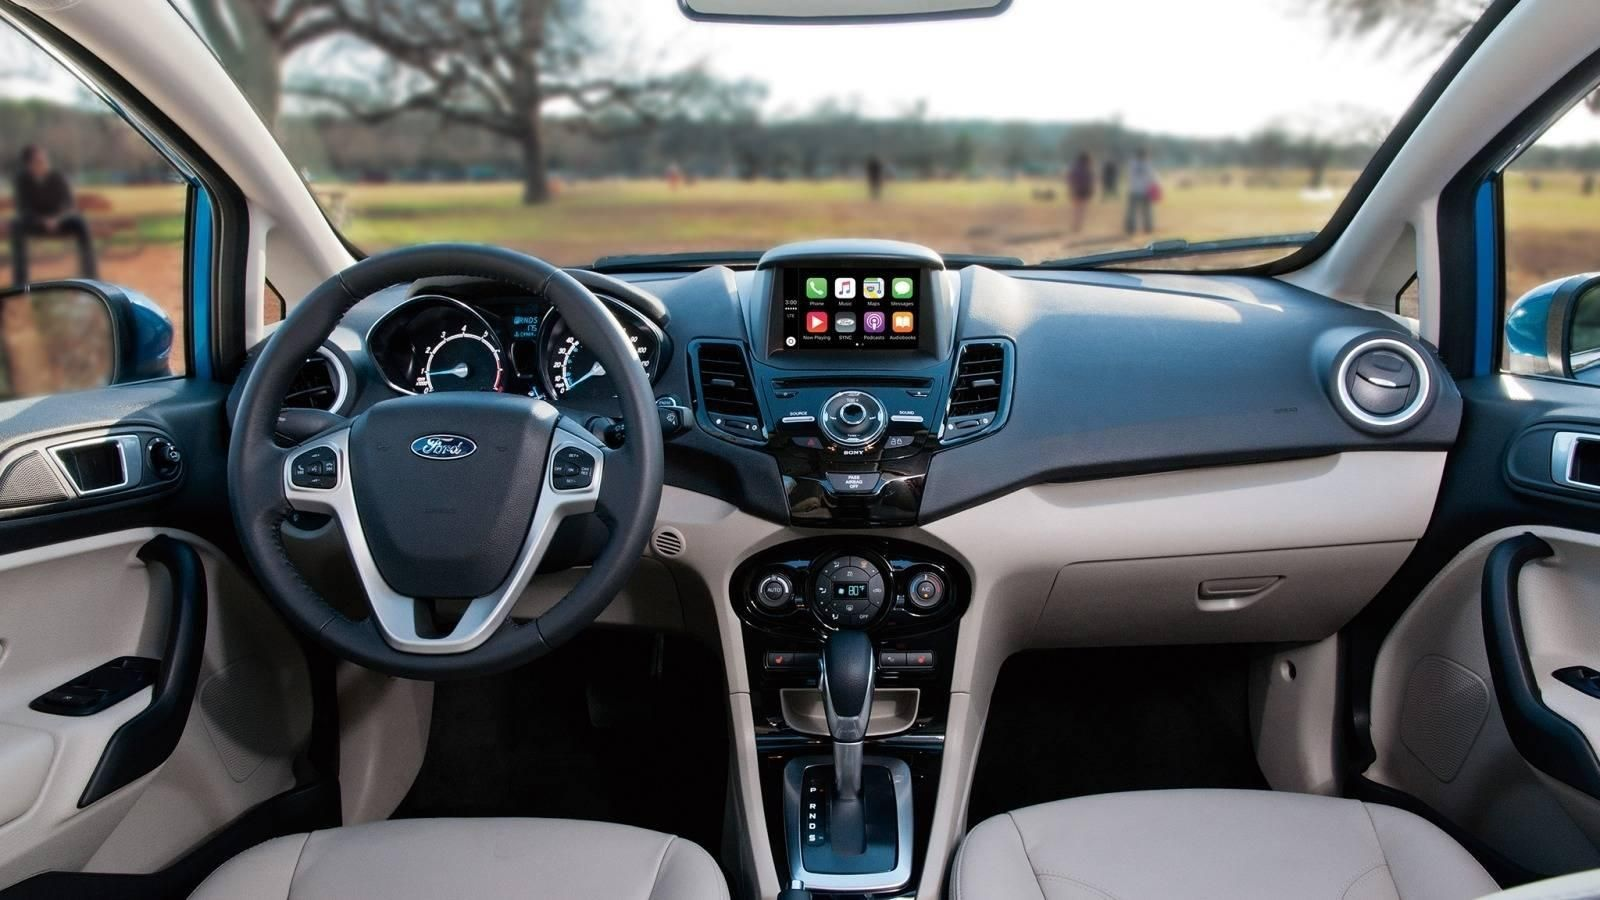 2018 Ford Fiesta Review Ratings Edmunds With 2018 Ford Fiesta